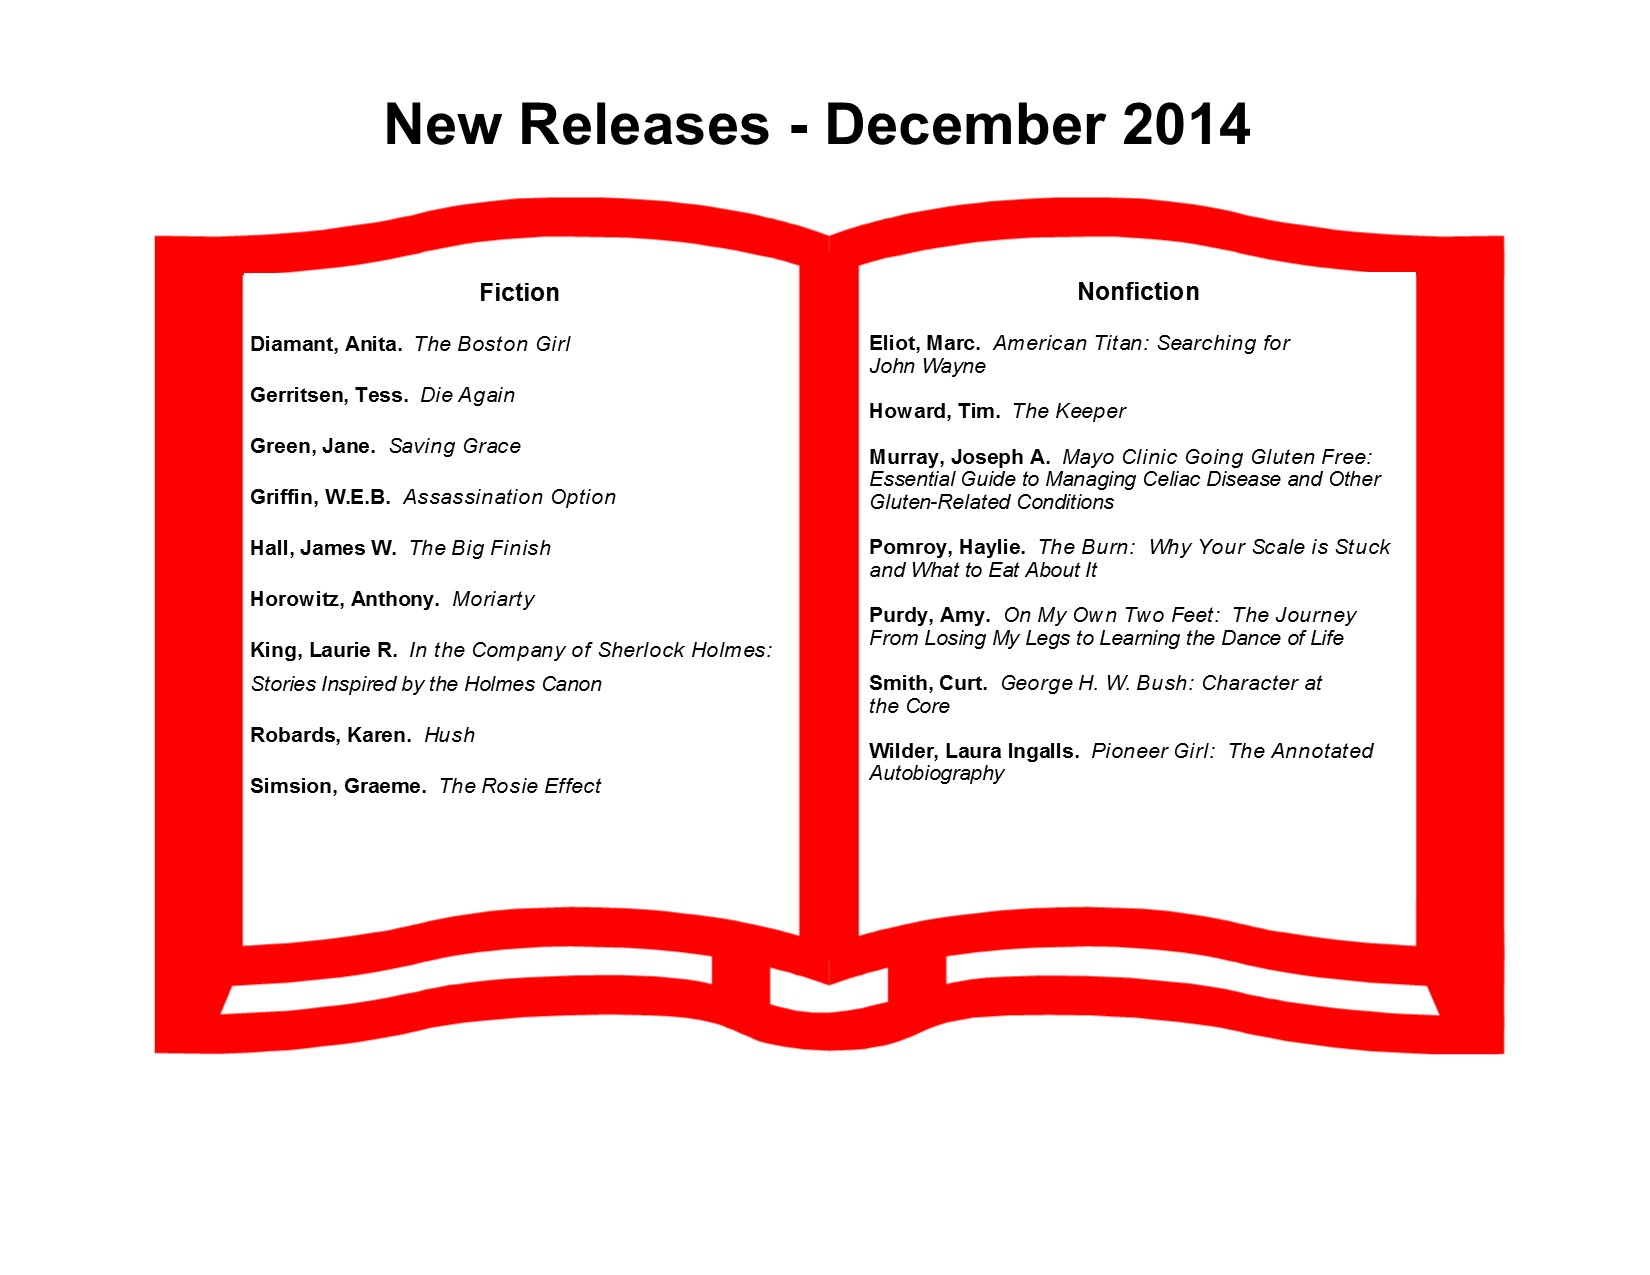 New Releases 12-14